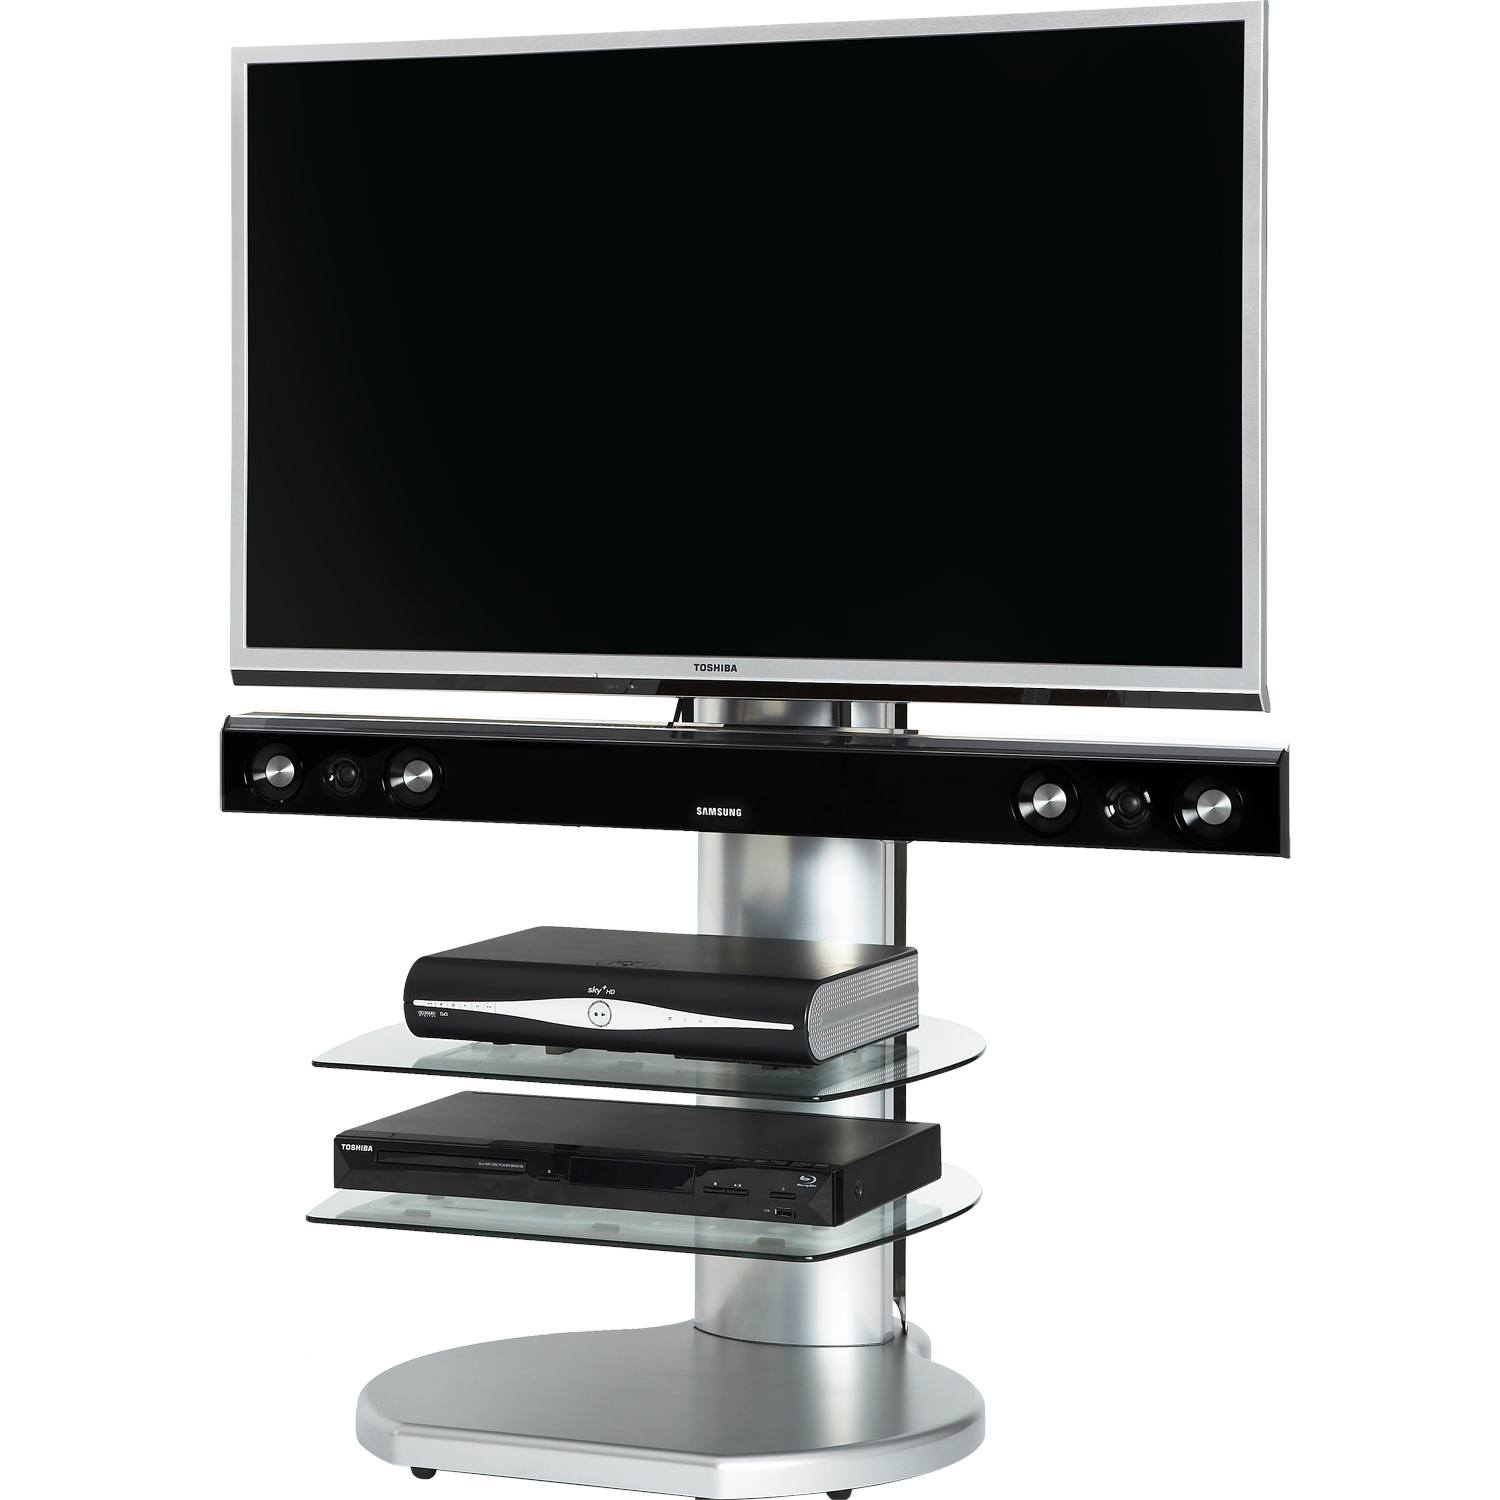 off the wall origin ii s silver  tv stand fits up to  with  - off the wall origin ii s silver  tv stand fits up to  with overhangnew £